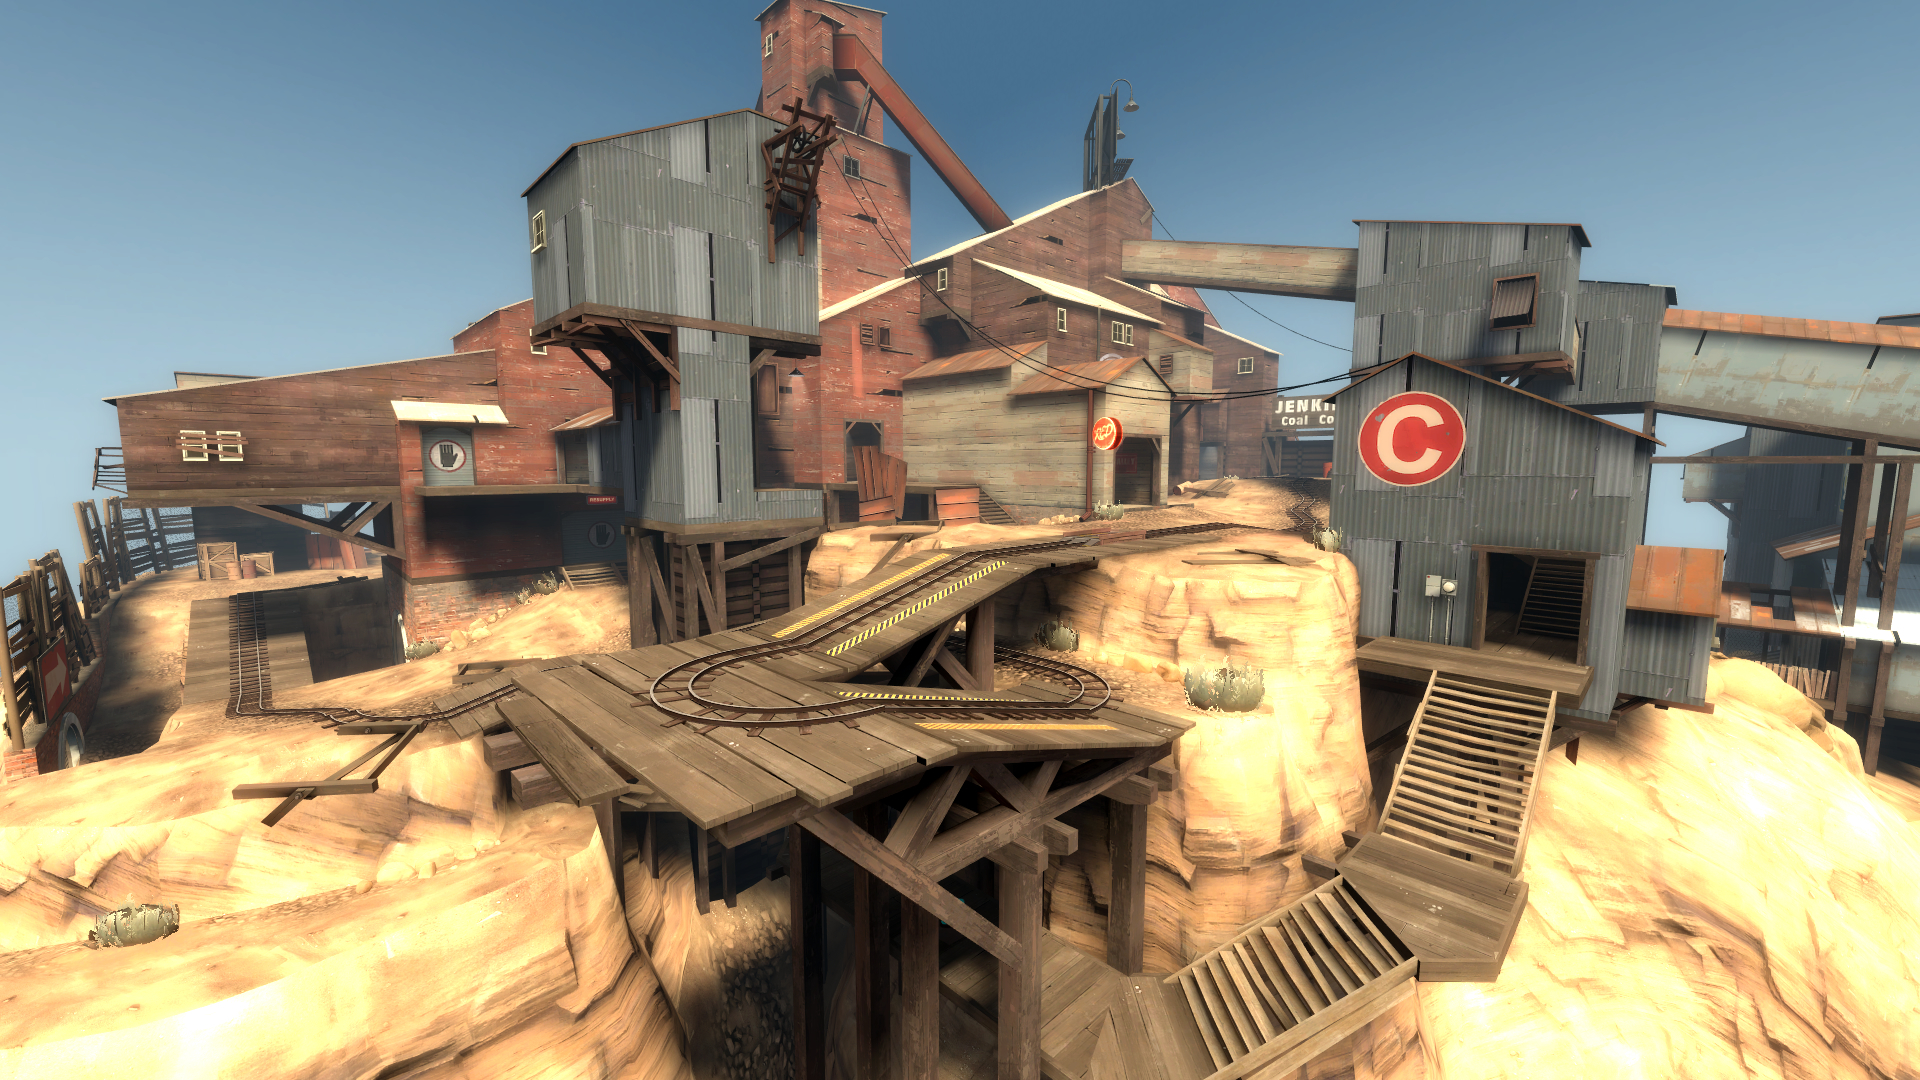 Team fortress architecture